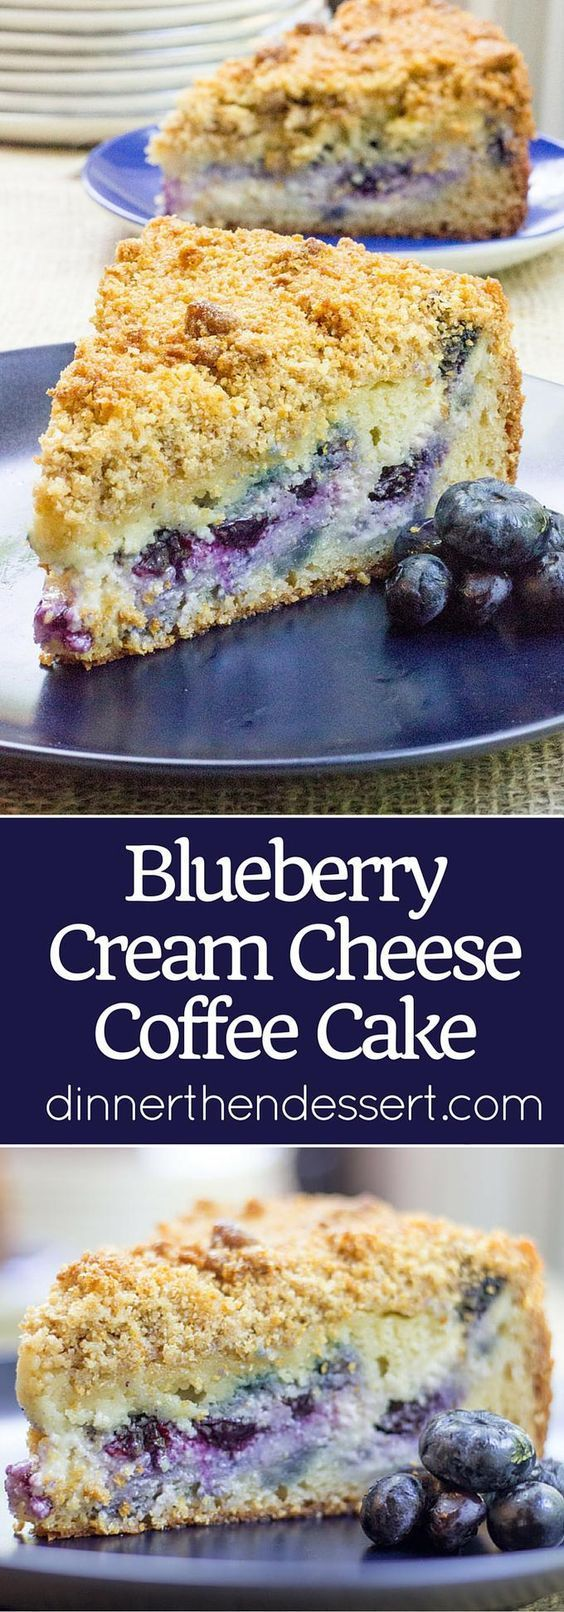 Blueberry Cream Cheese Coffee Cake with a tender center, creamy filling and a crunchy, buttery topping. A perfect mix of crumb coffee cake and cheesecake. #cookingwithgerber ad: